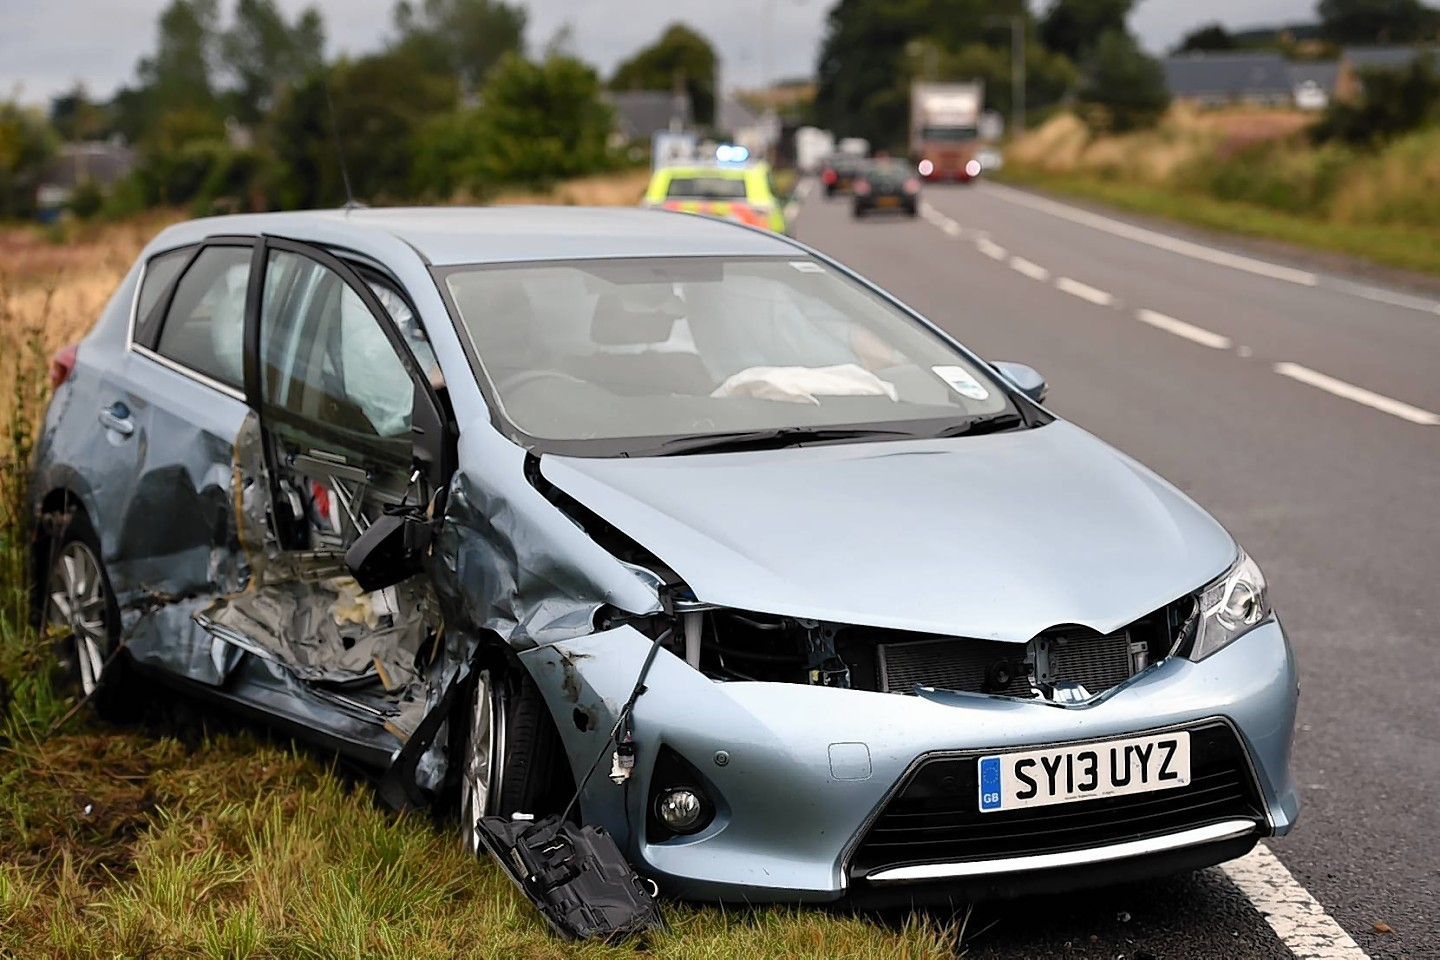 The Toyota was left at the side of the road